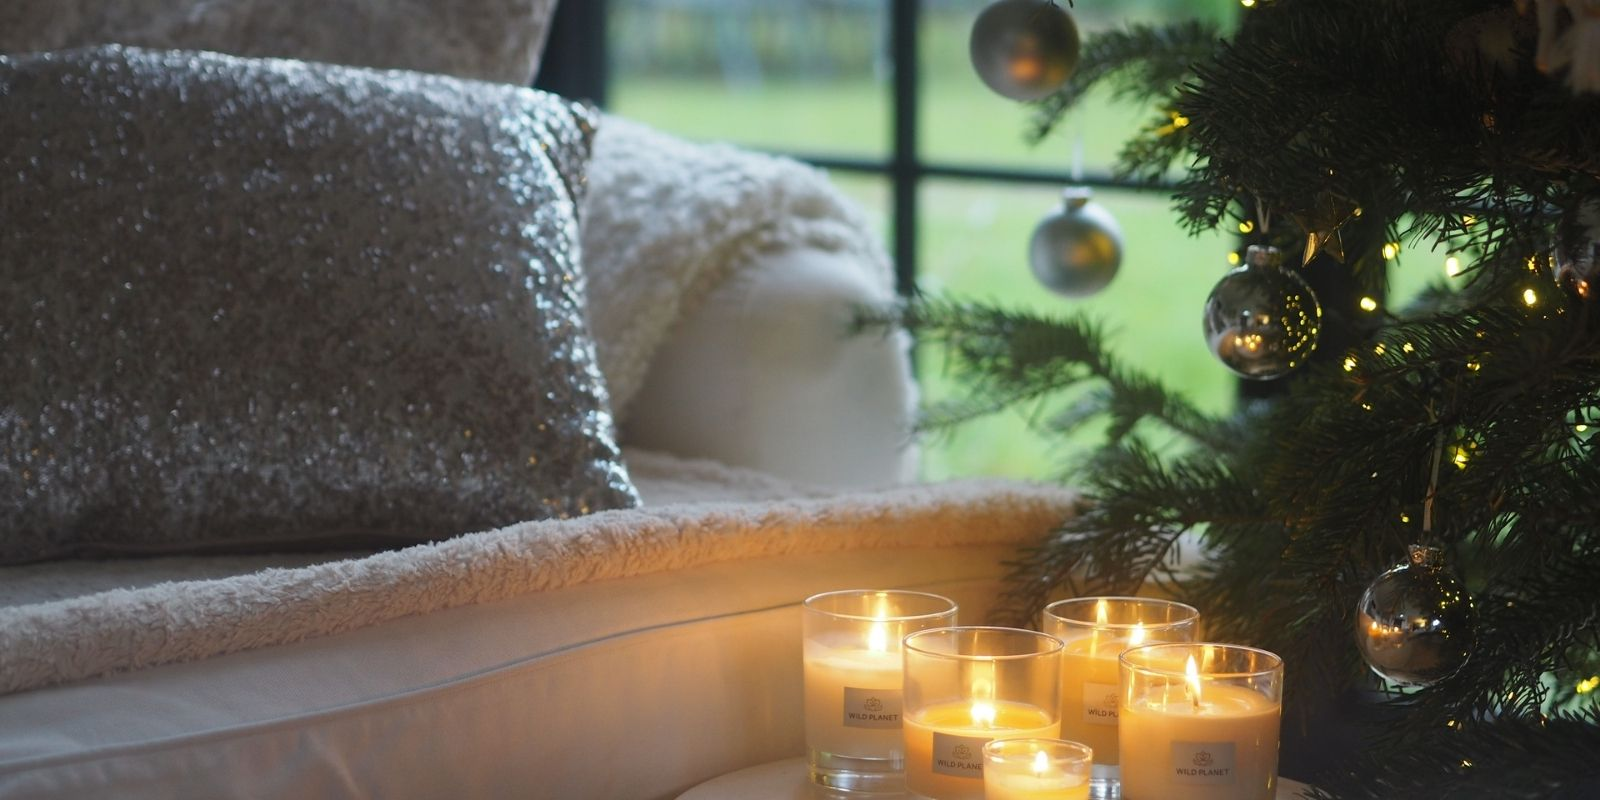 Lit scented candles next to Christmas tree and white sofa by Wild Planet Aromatherapy